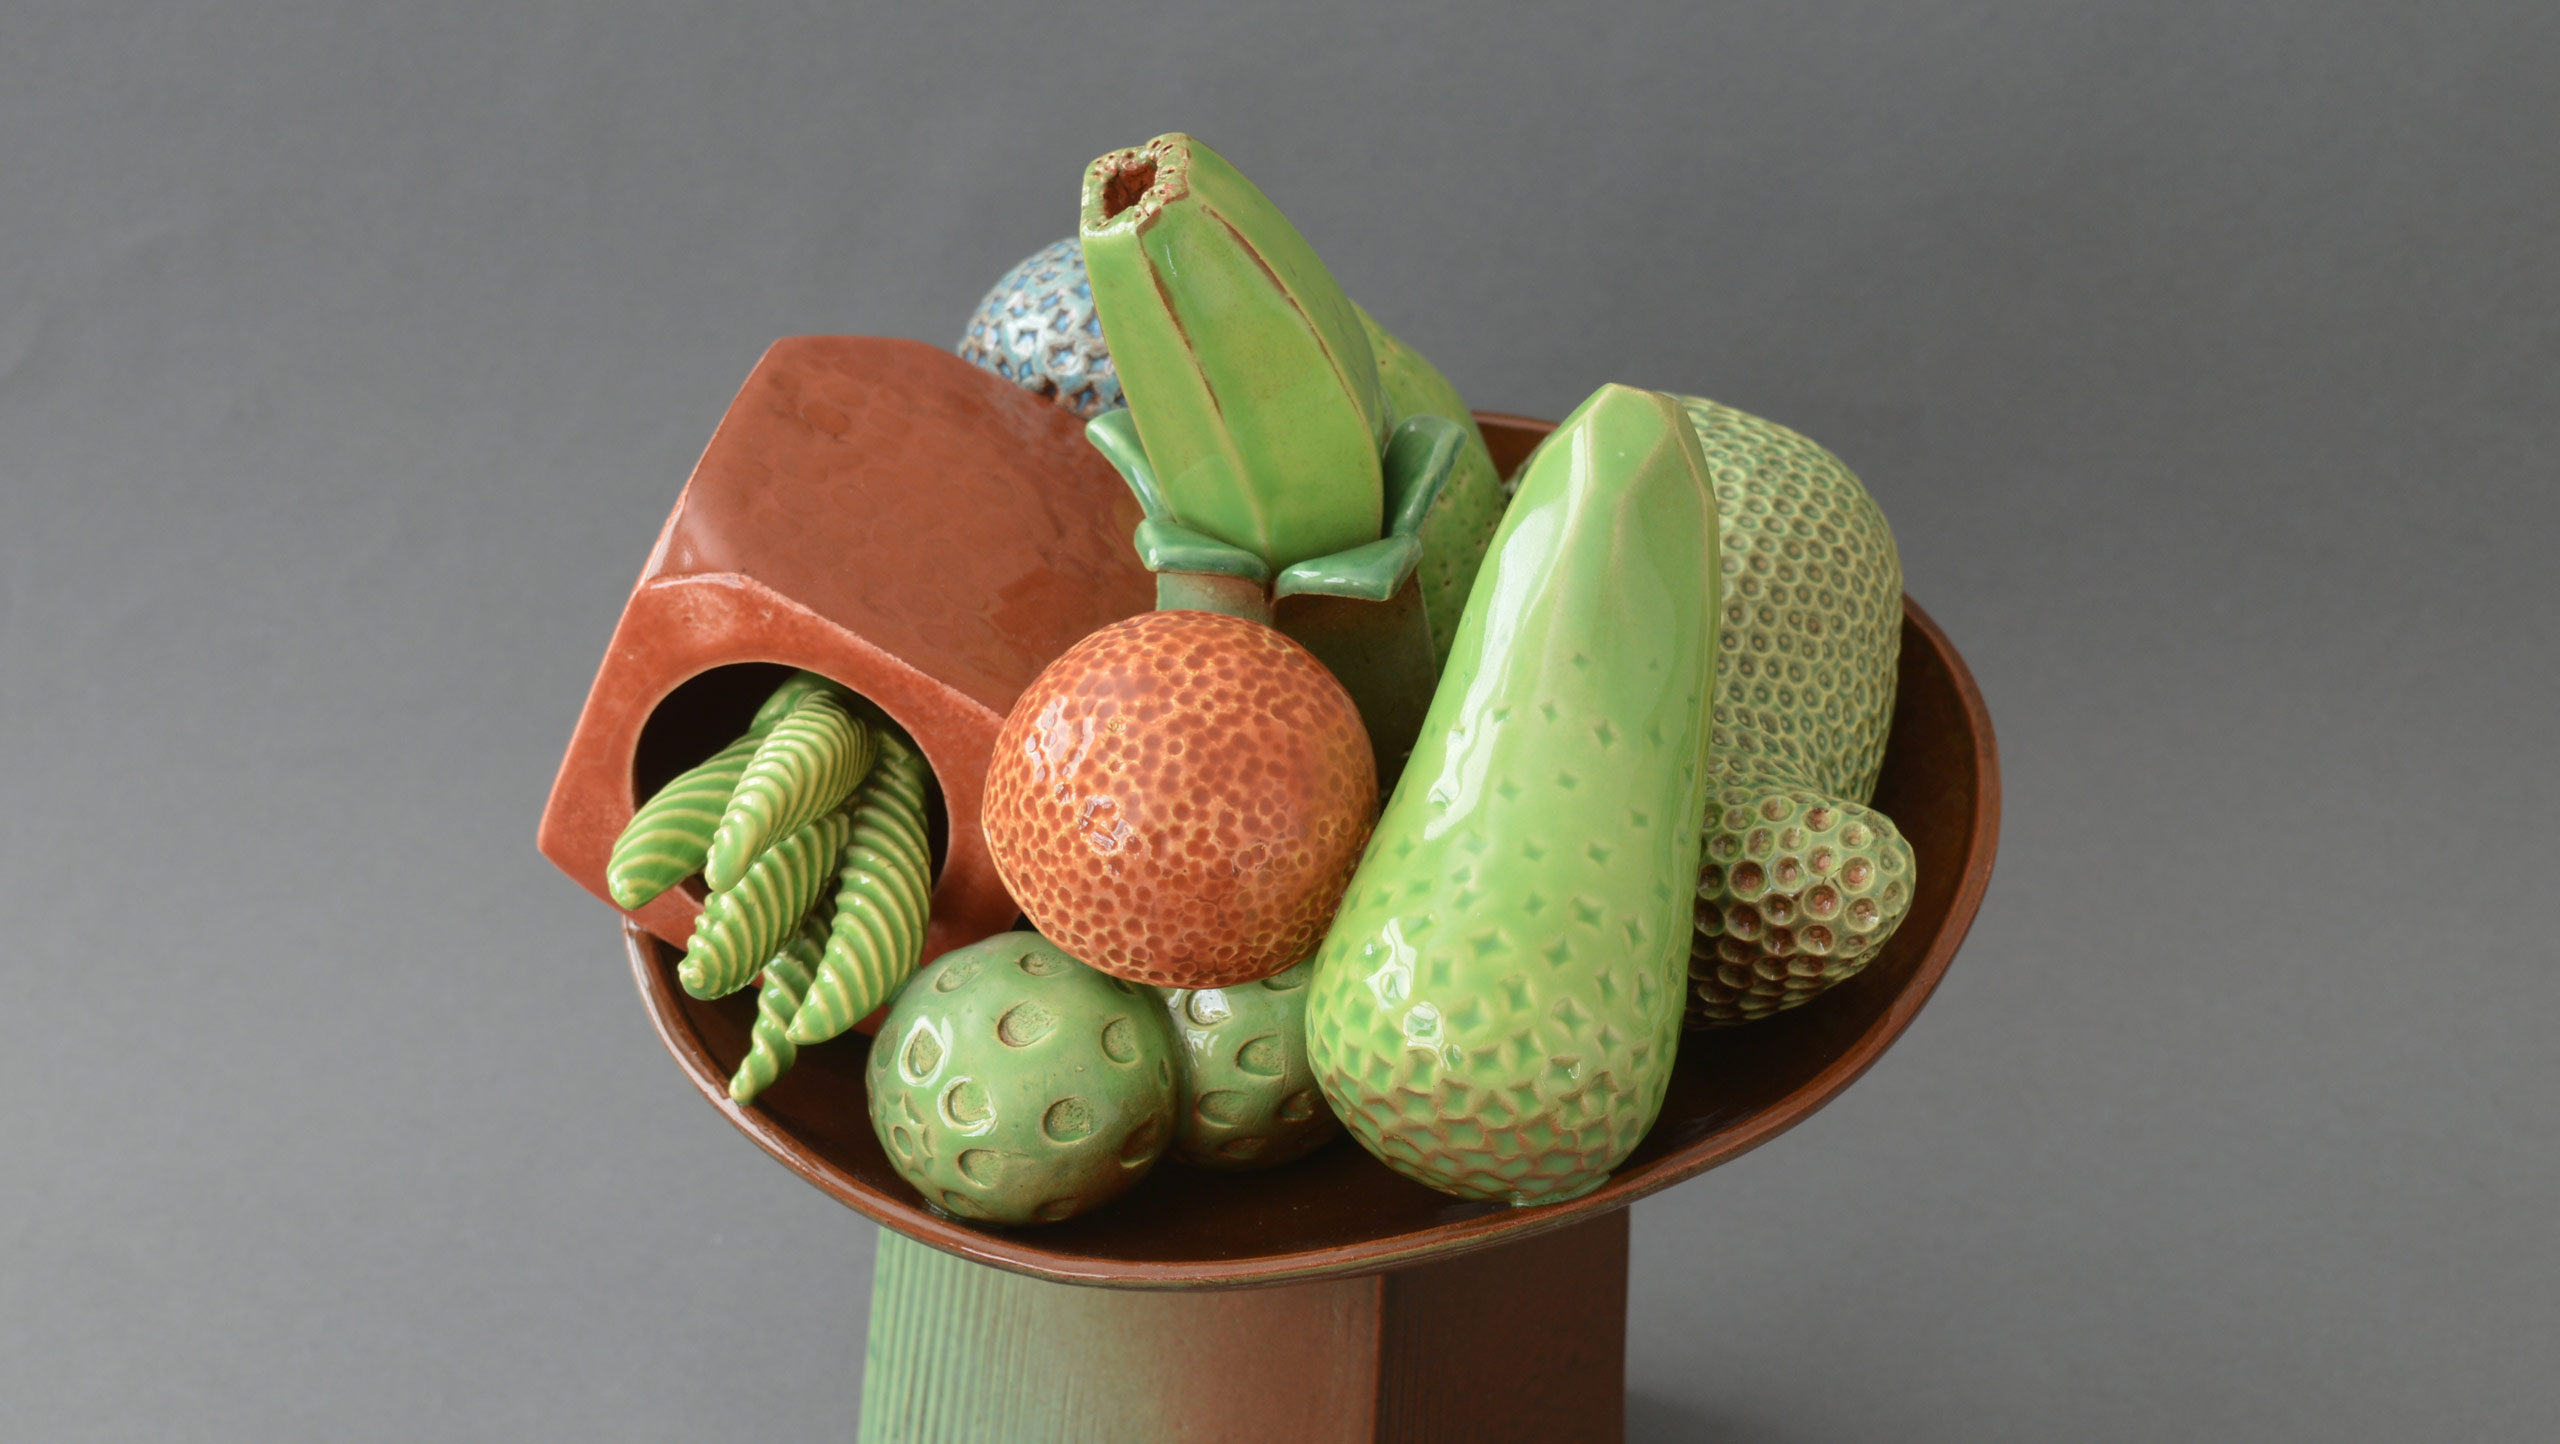 Photograph of 'Abundance' - A still life on stand by contemporary ceramic artist Simon Fell